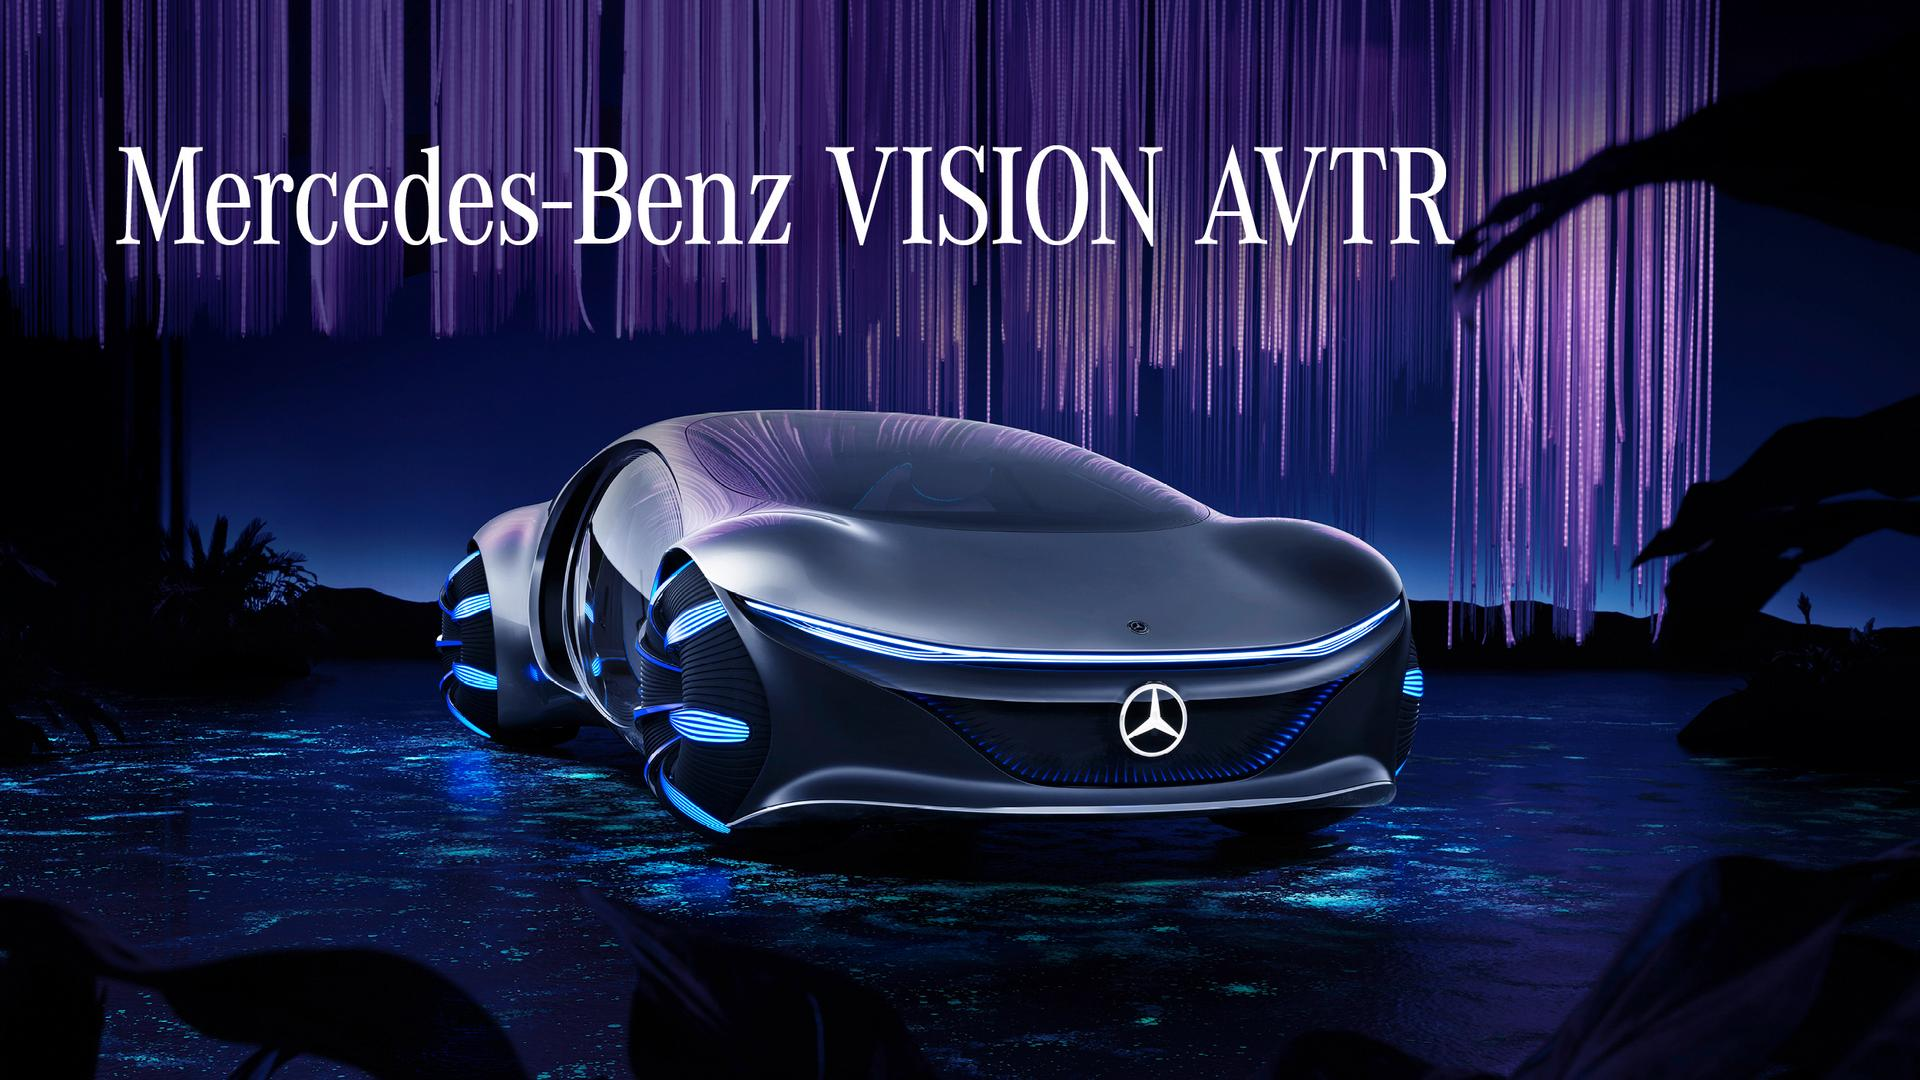 Official: Mercedes-Benz Vision AVTR Concept Car unveiled at CES 2020